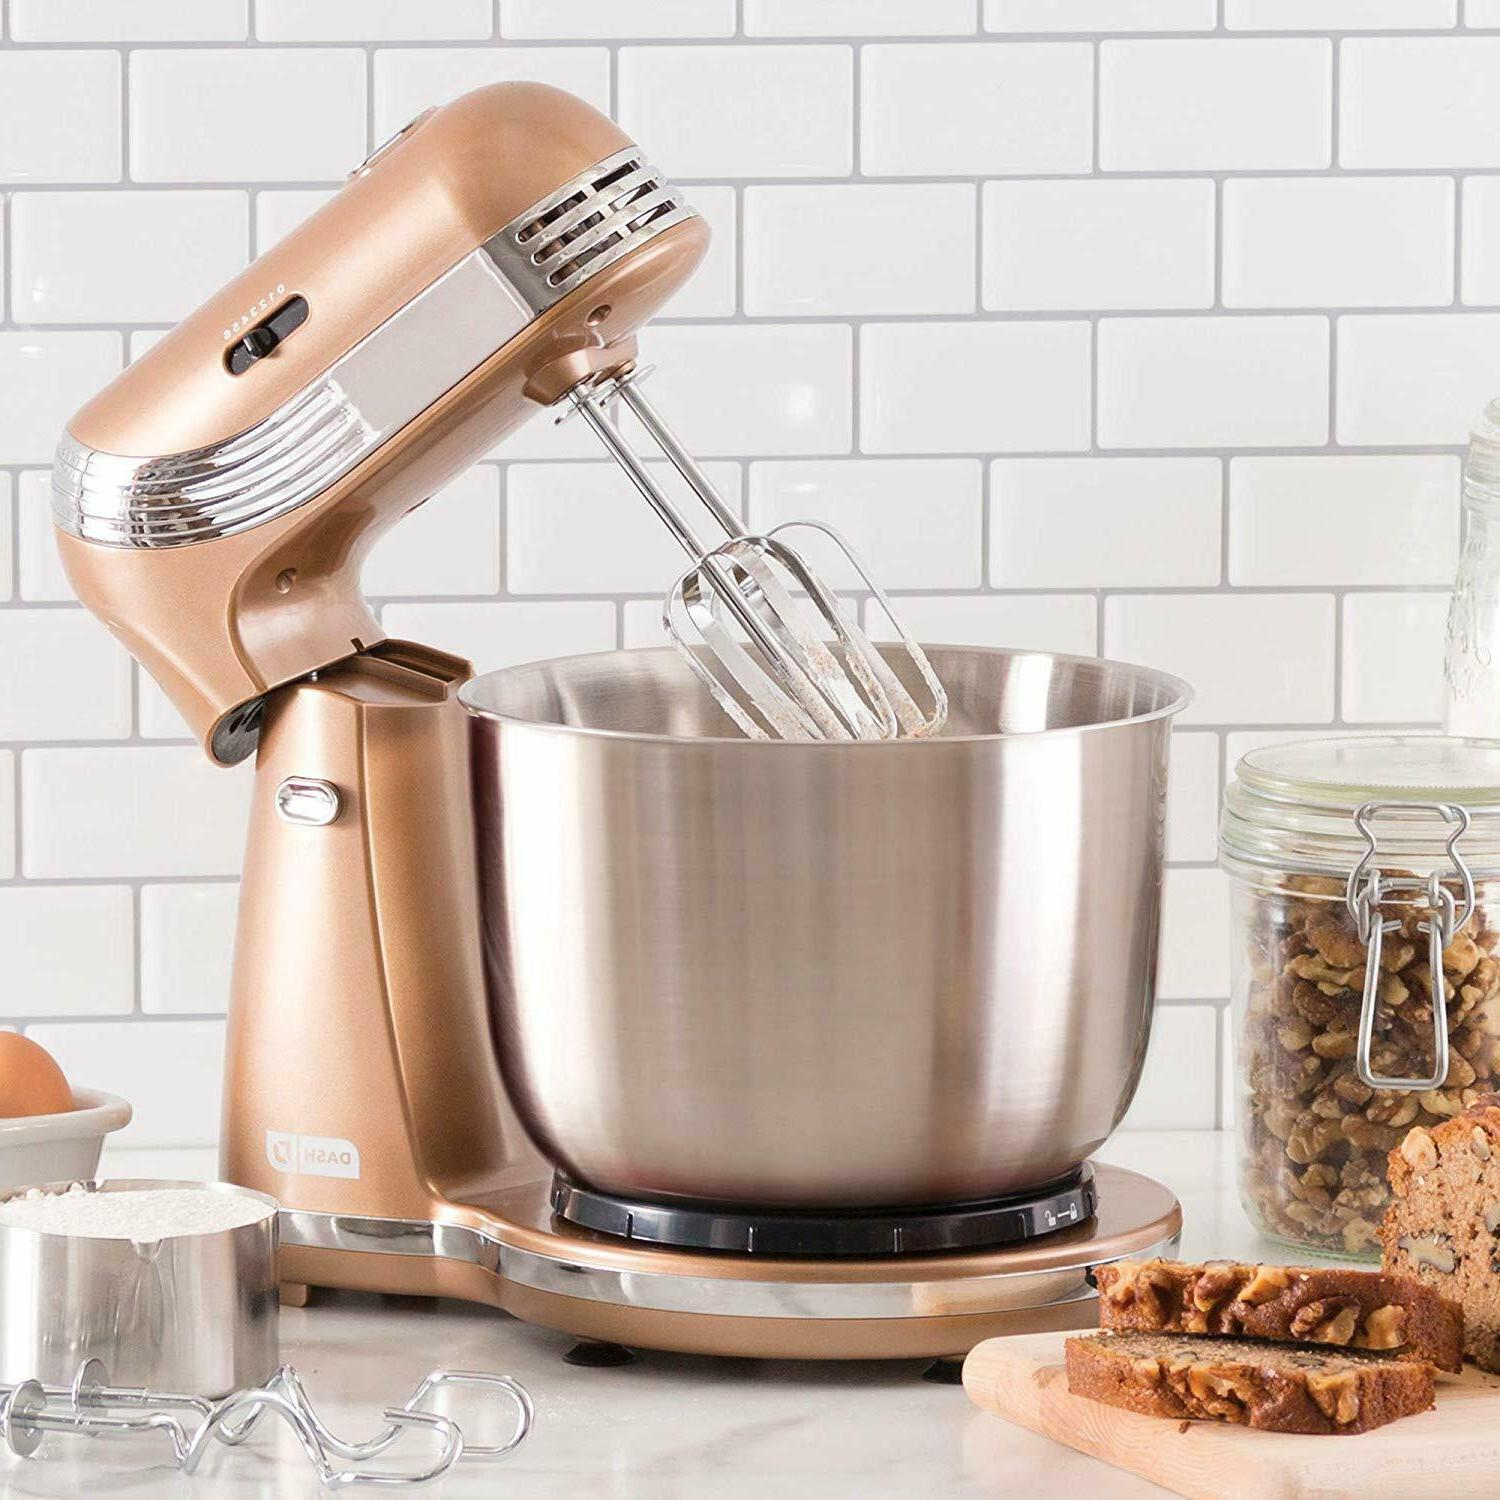 6 Electric Mixer With Stainless Bowl Black New